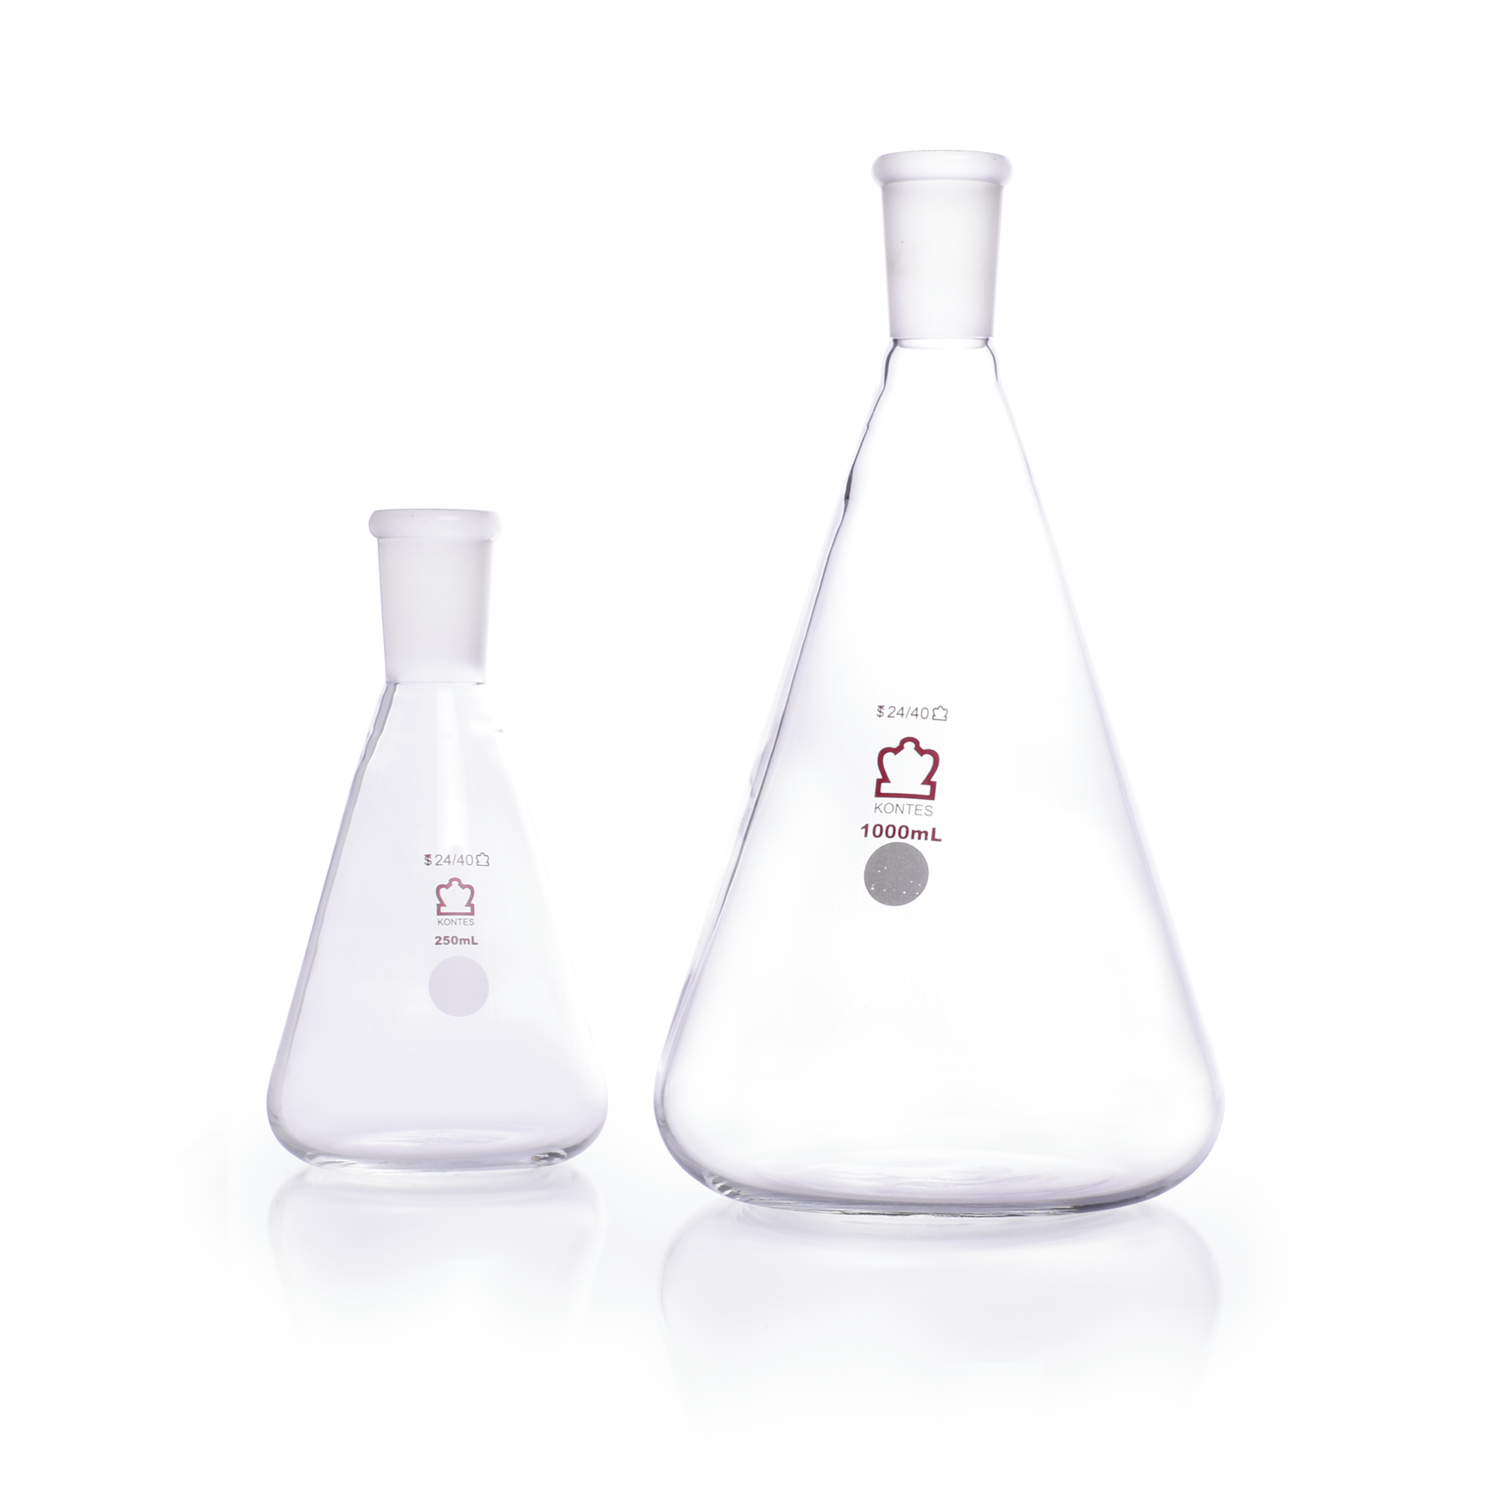 KIMBLE® KONTES® Jointed Narrow Mouth Erlenmeyer Flask, 24/40, 2000 mL